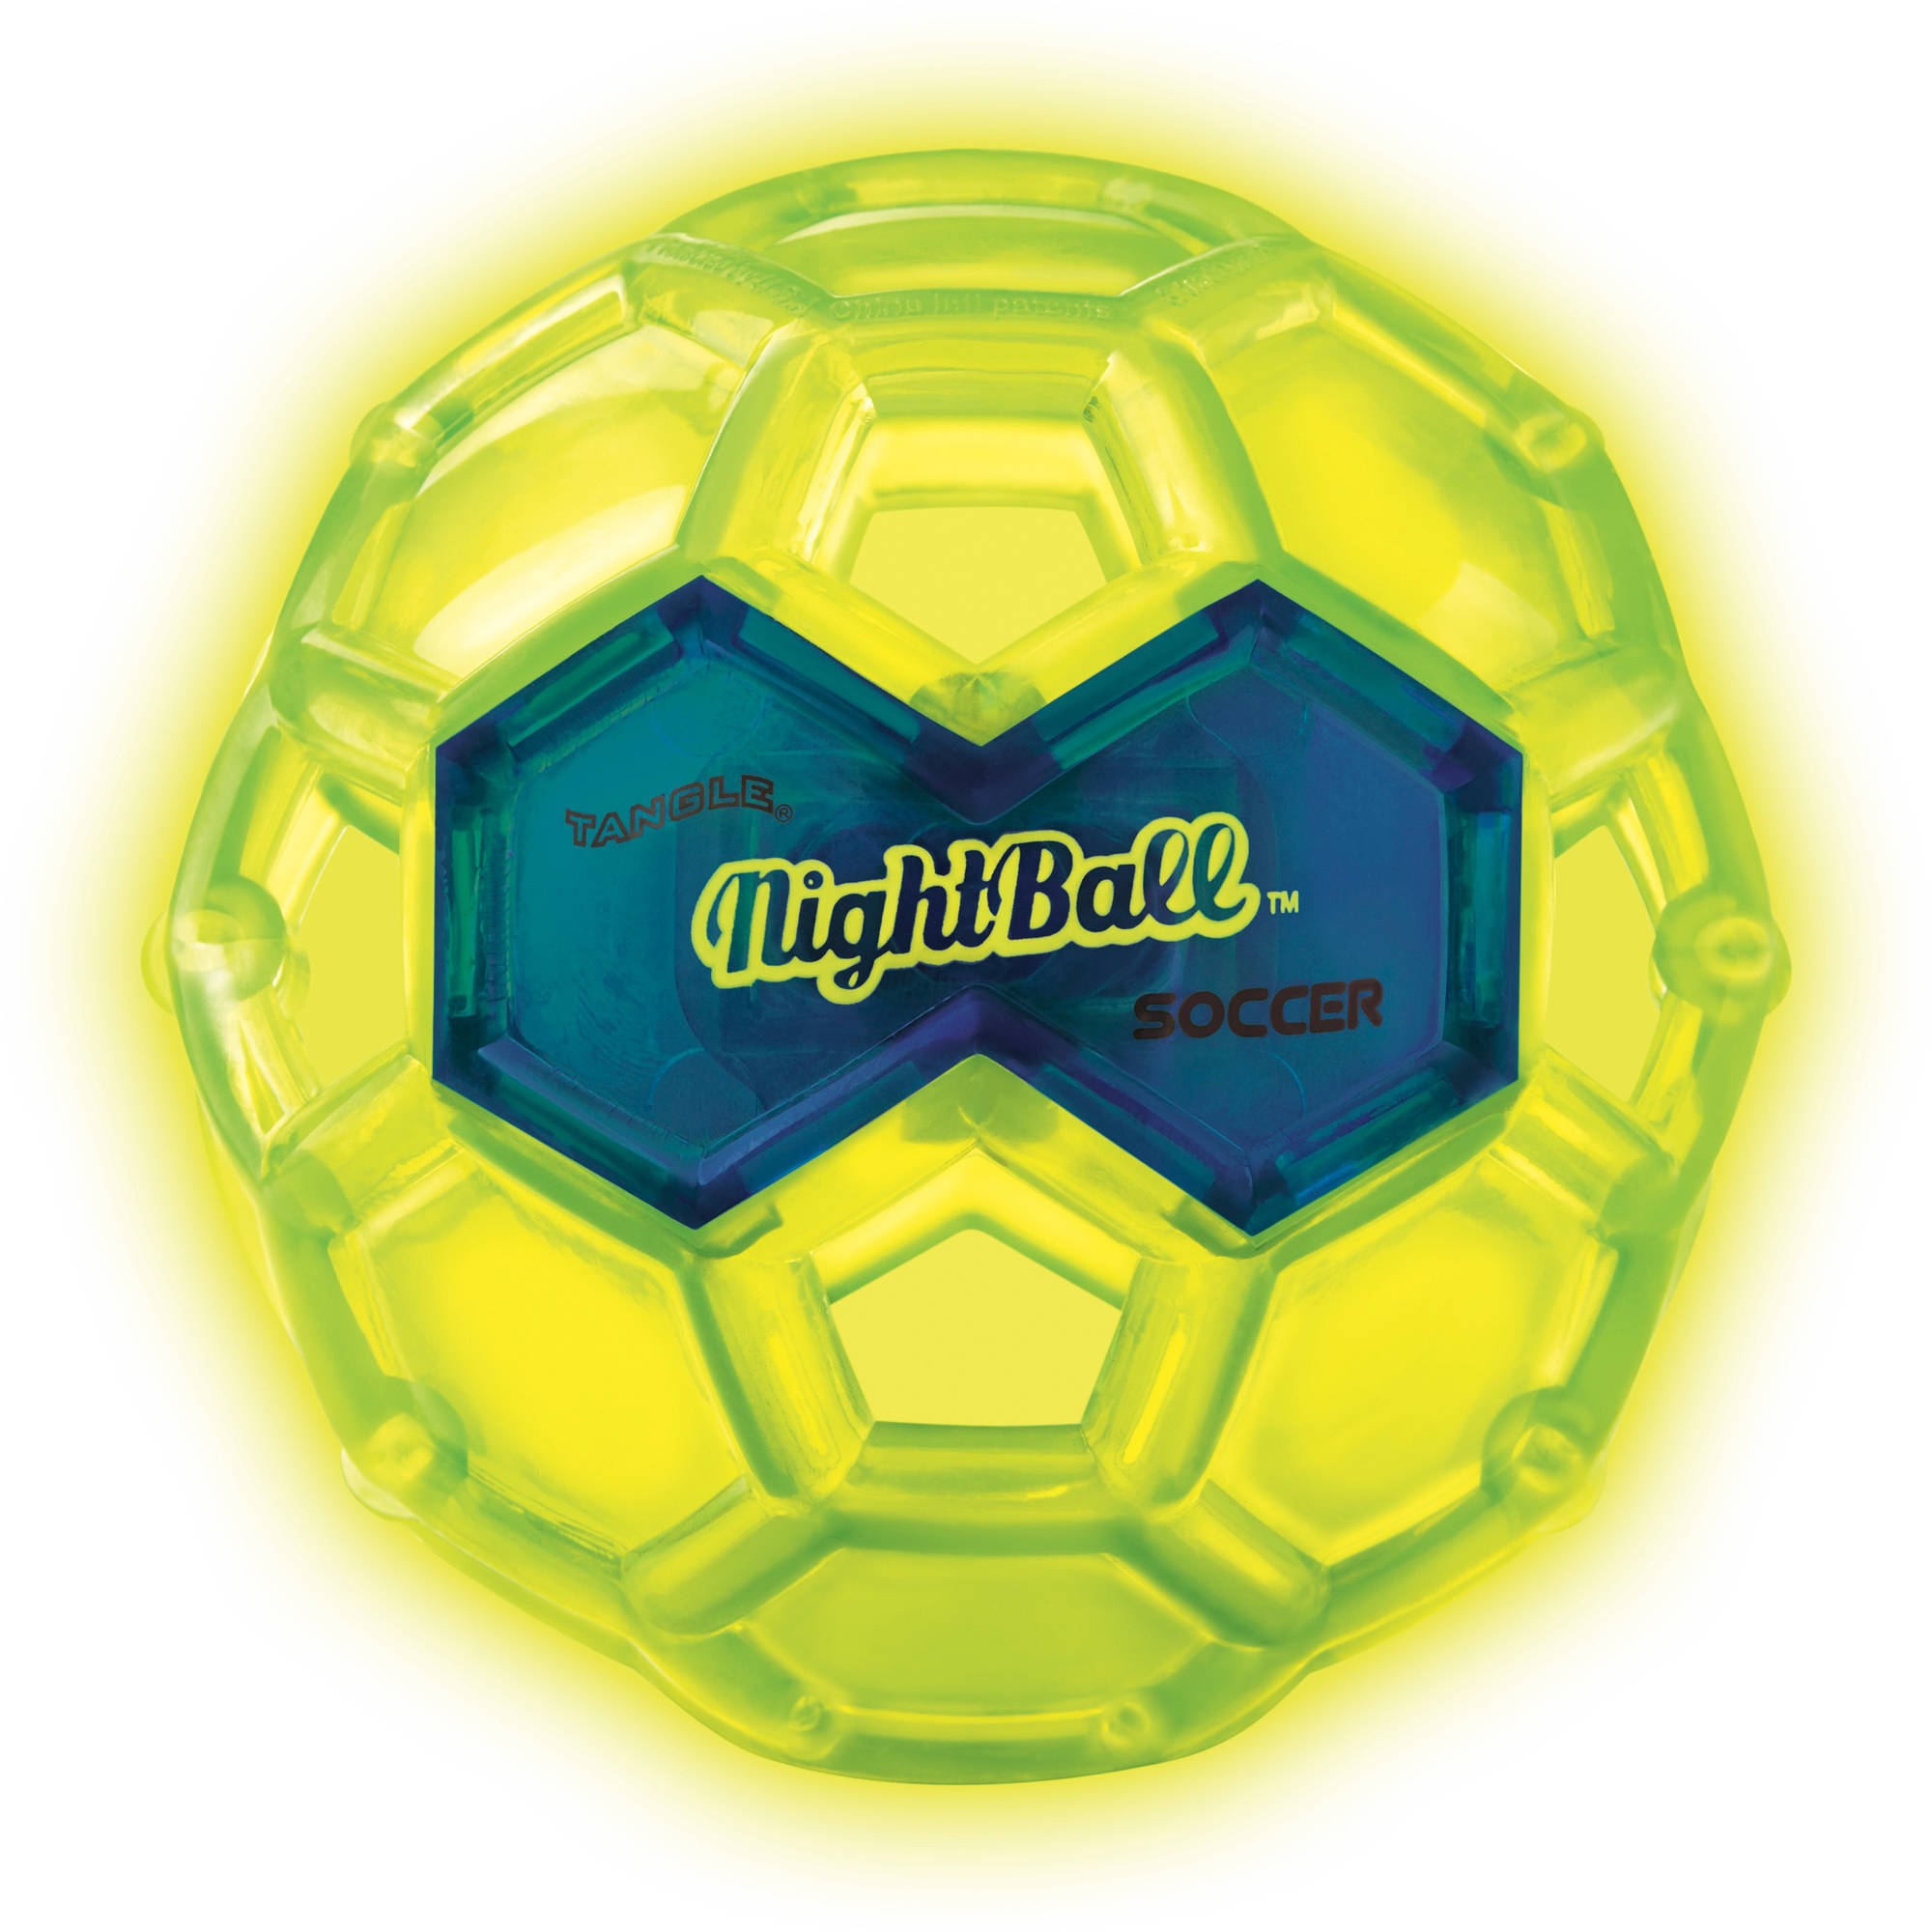 Tangle NightBall Soccer, Electric Green, Large by Tangle